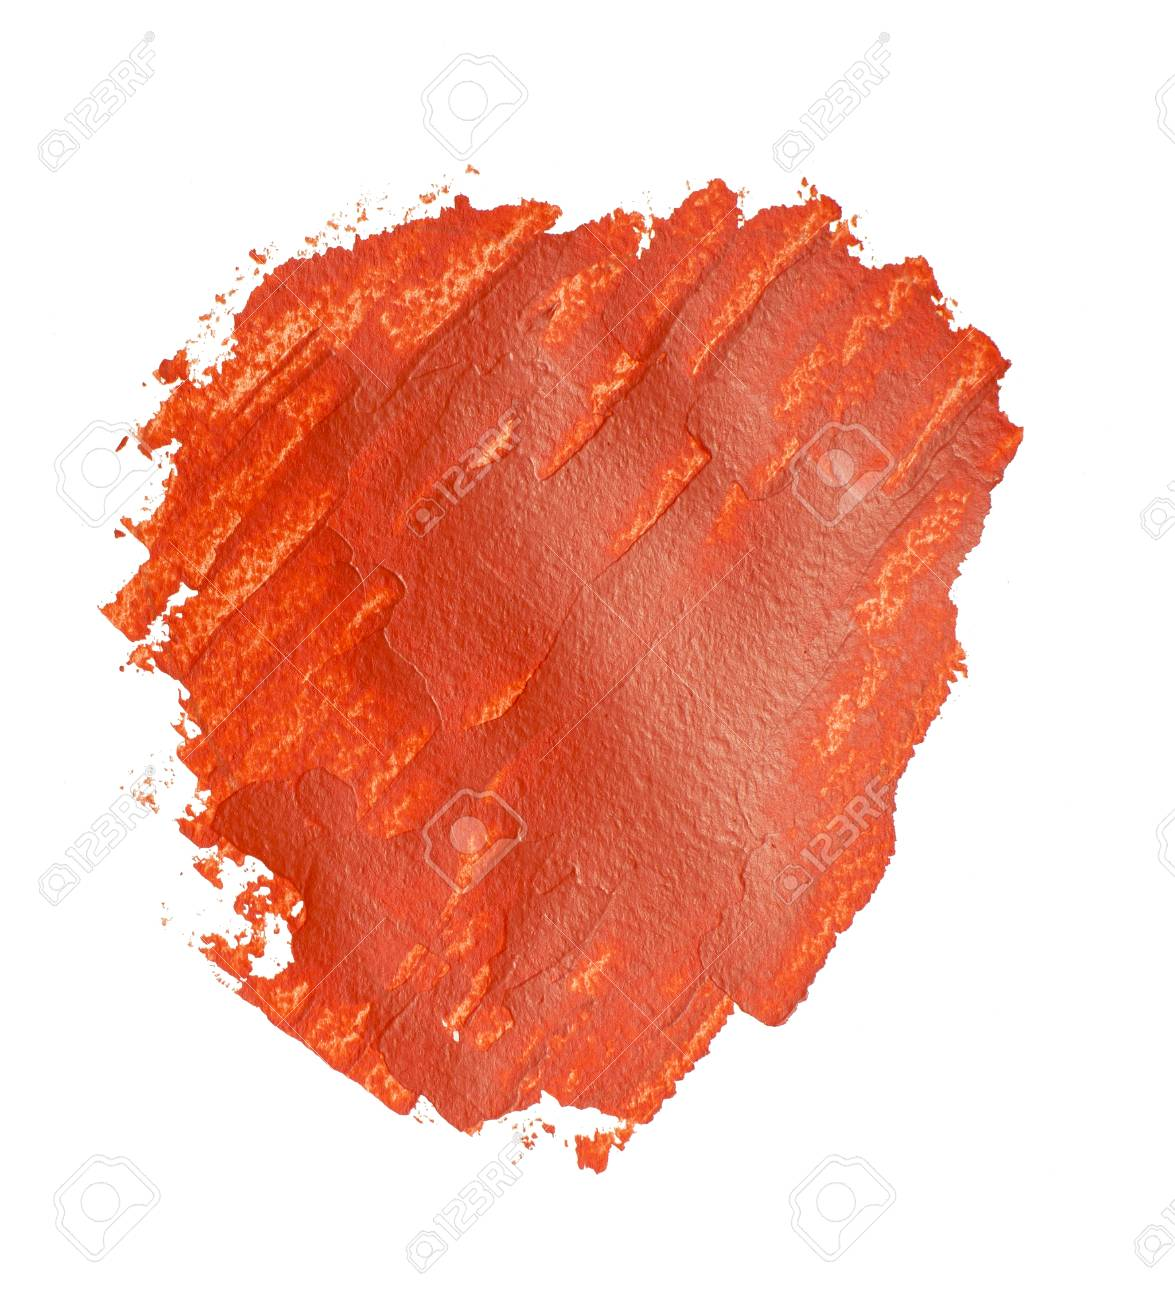 Red Paint Spot Red Daub Design Element Stock Photo Picture And